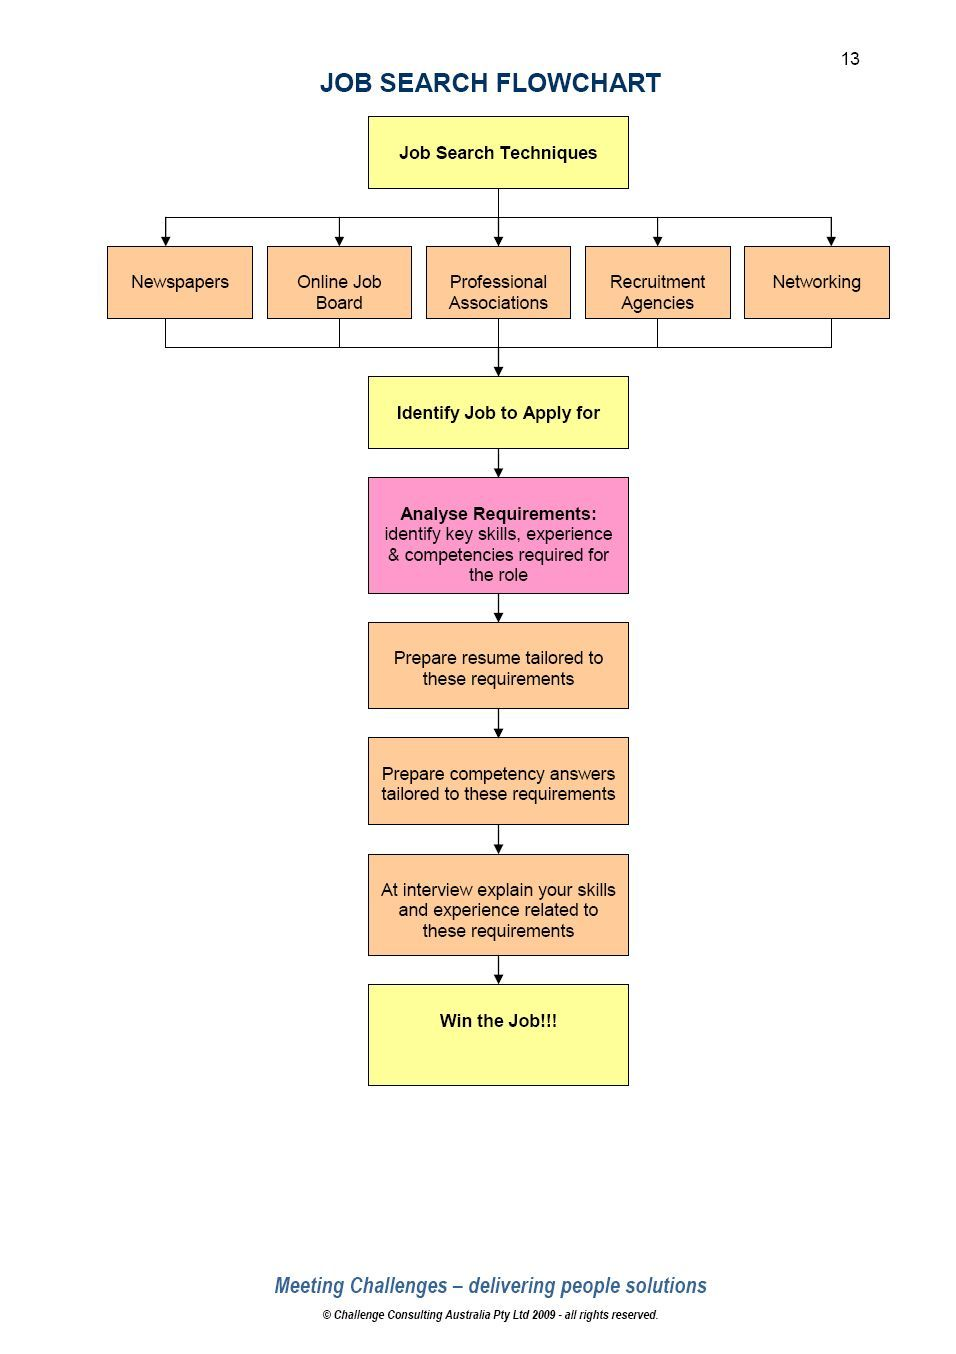 Job search flowchart career advice education interview also searching for  pinterest rh